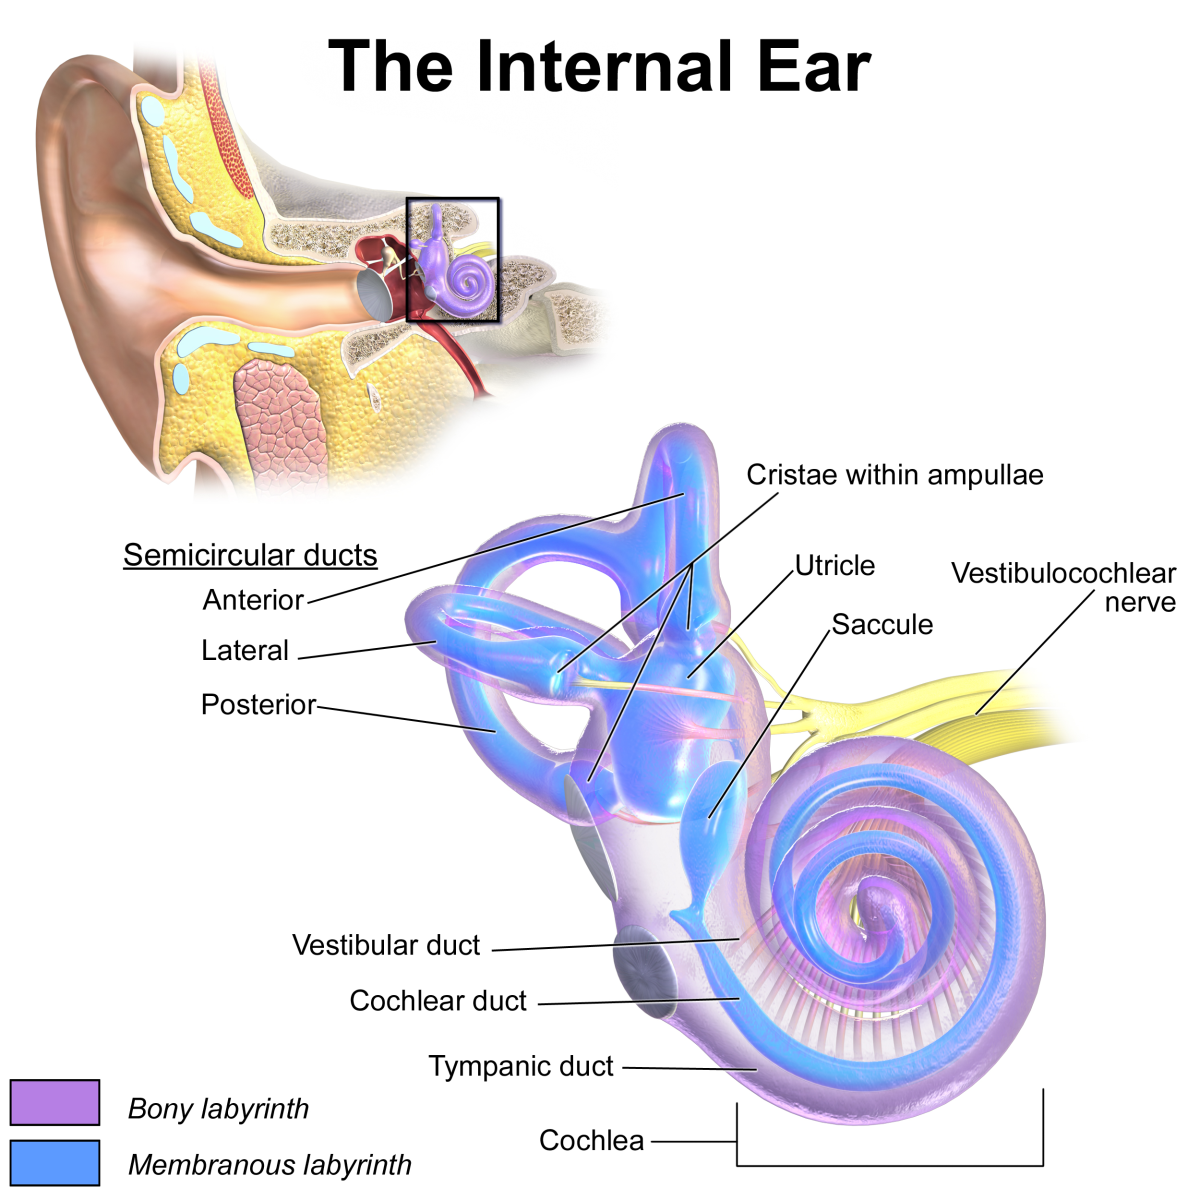 The vestibulocochlear nerve consists of the vestibular nerve and the cochlear (or auditory) nerve.